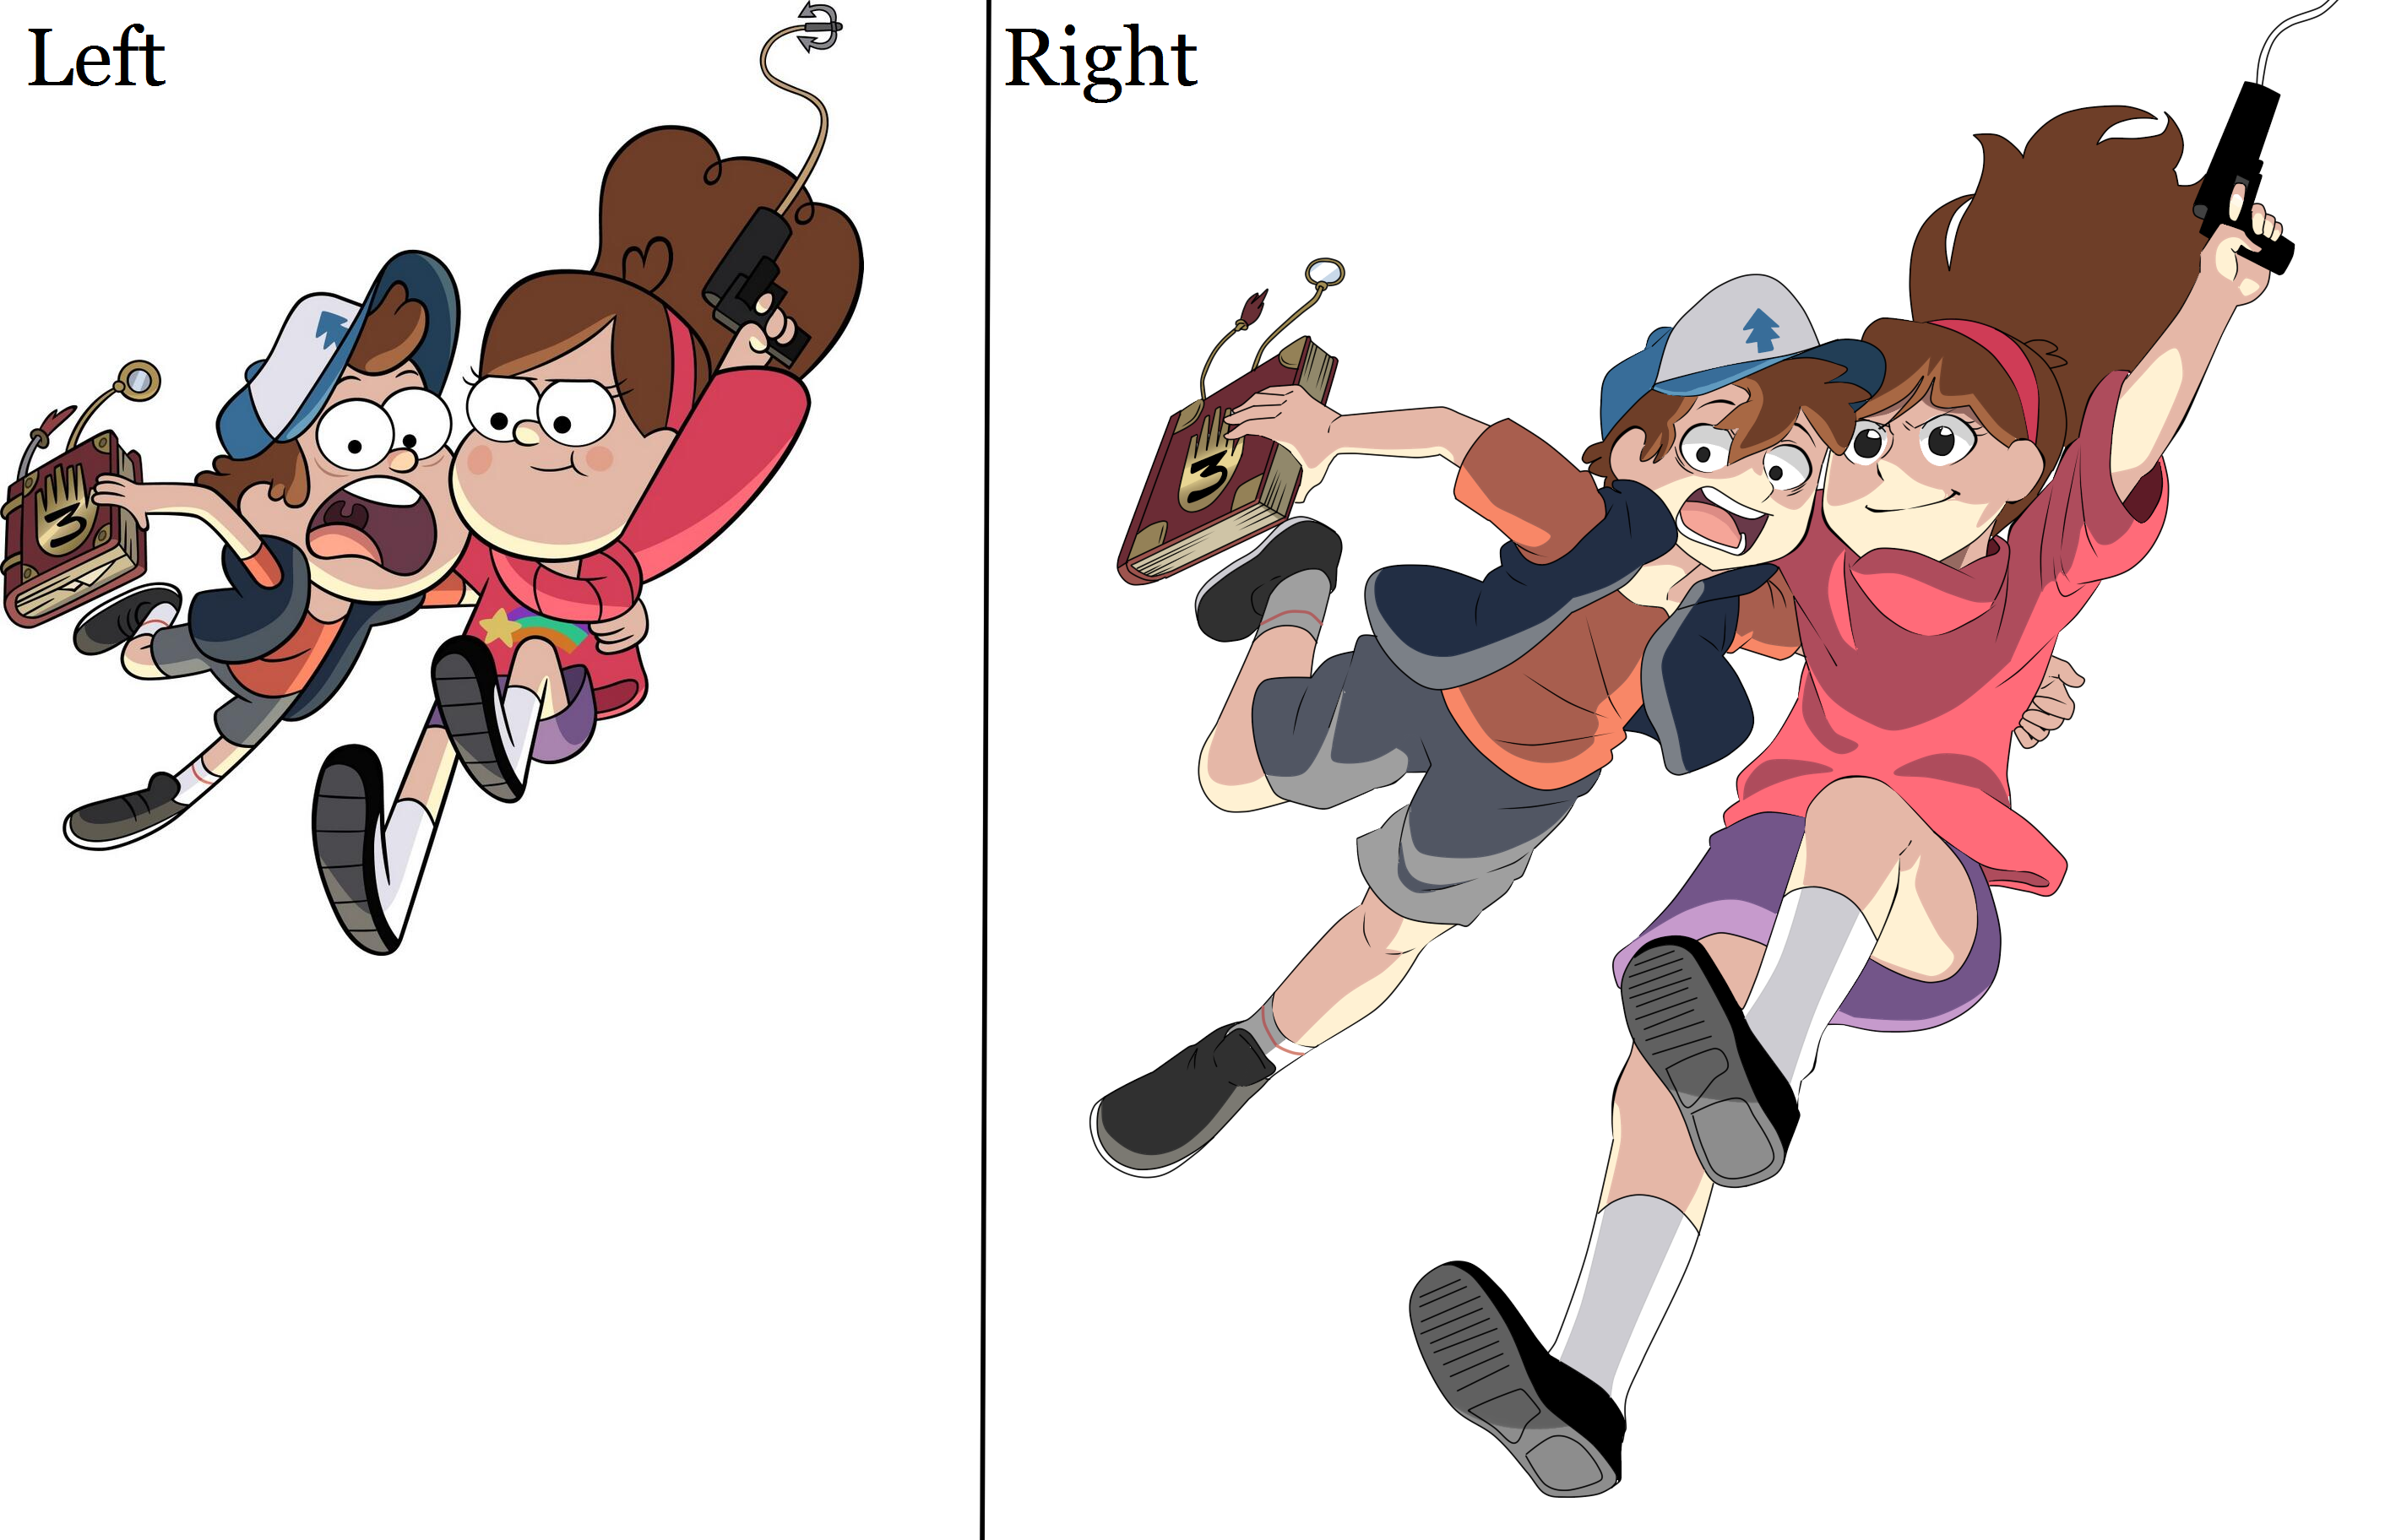 I knew this would come in handy someday! Gravity falls